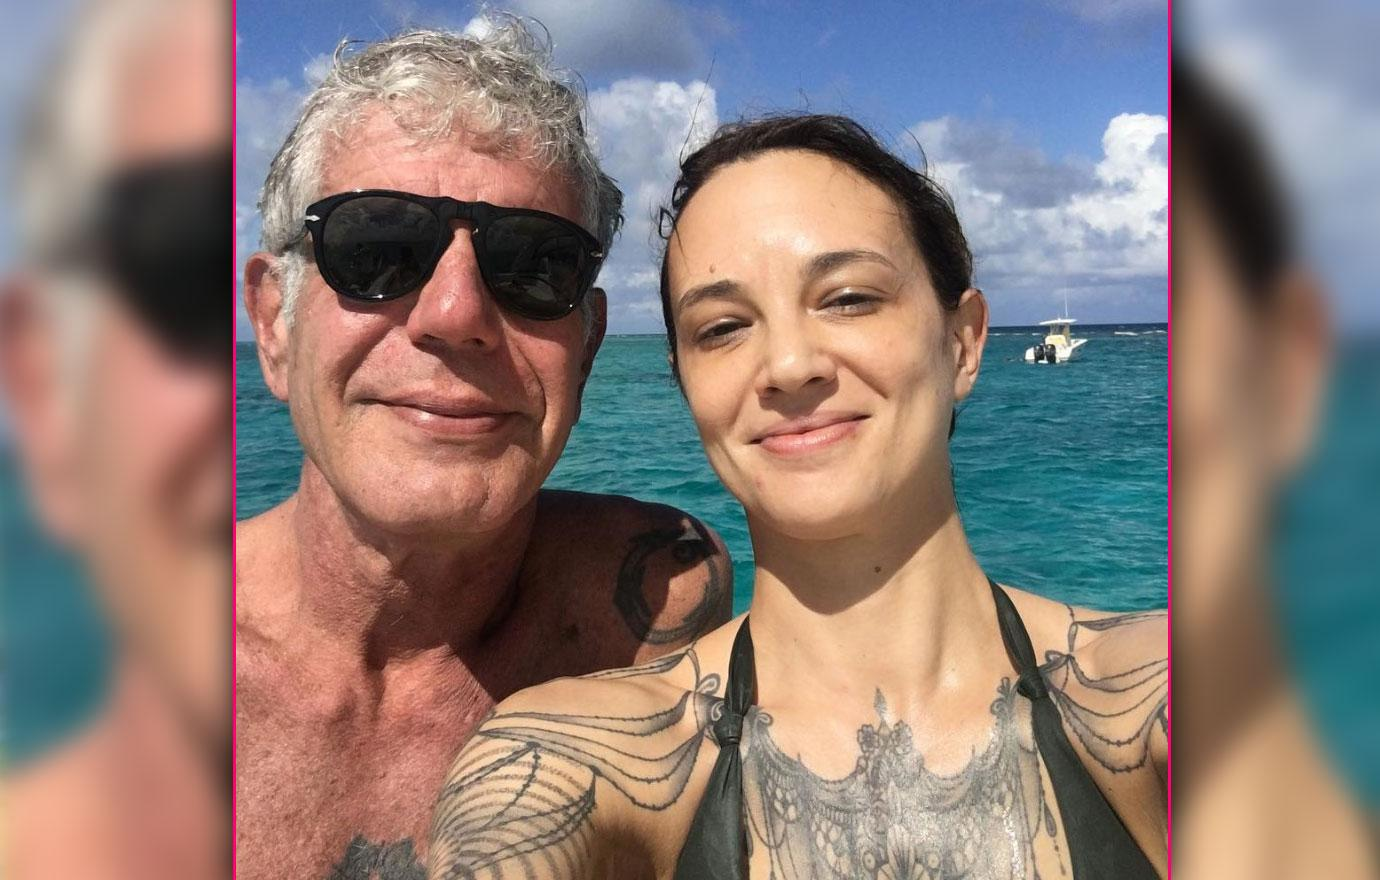 Asia Argento Cry For Help After Anthony Bourdain Suicide